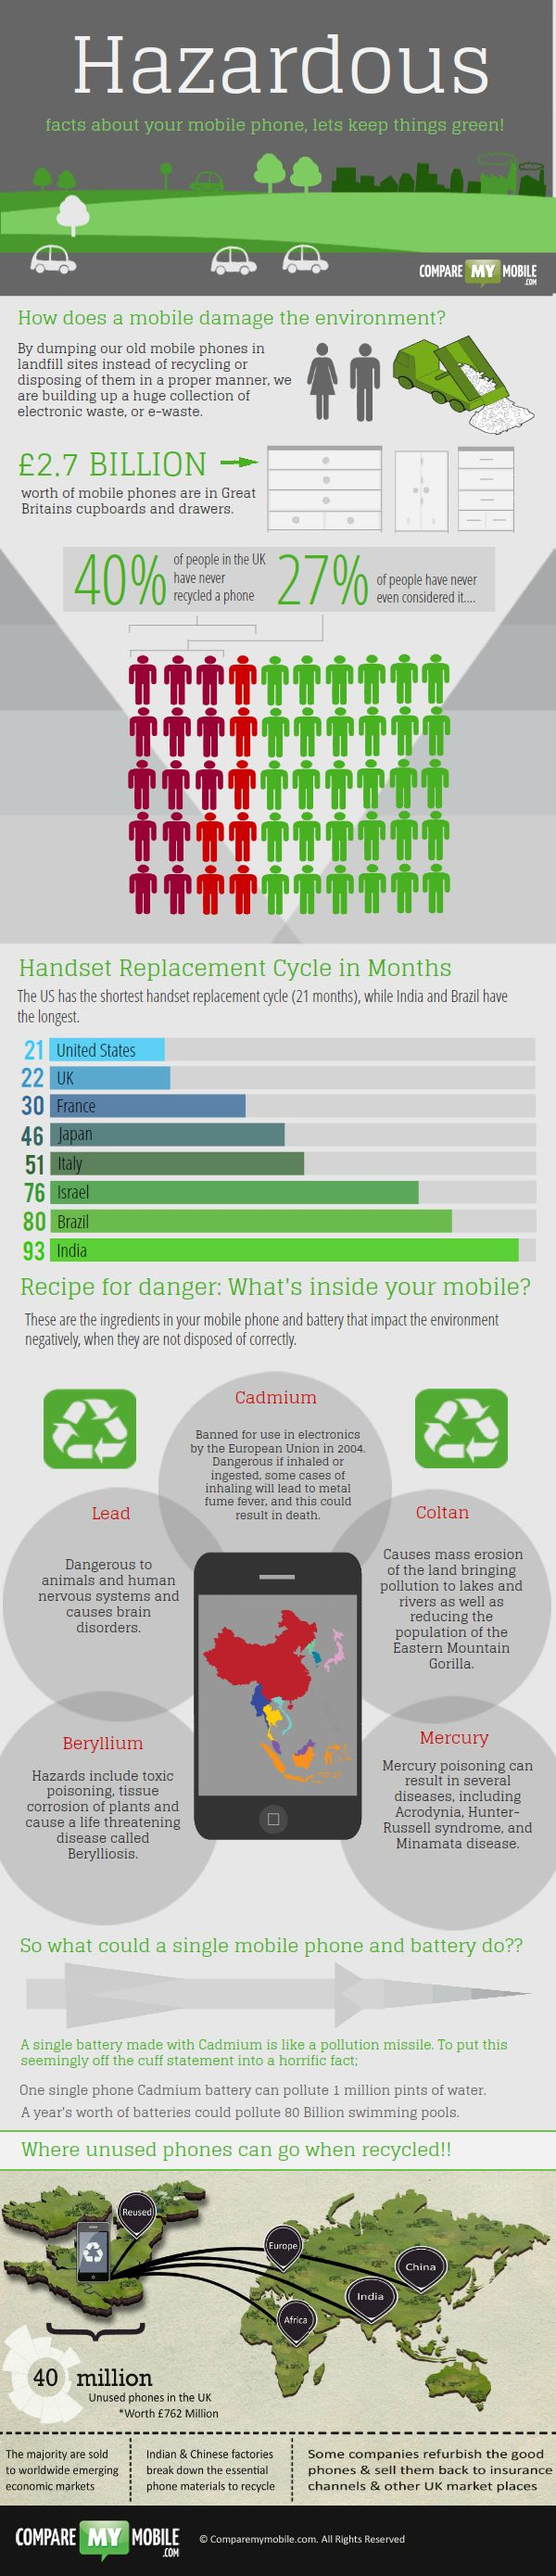 A round up of mobile phone recycling information in this infographic about the hazardous materials in mobile phones, how to sell mobile phones to help the enviroment, proving people who recycle mobile phones do make a difference and earn a little extra cash for their phones too!